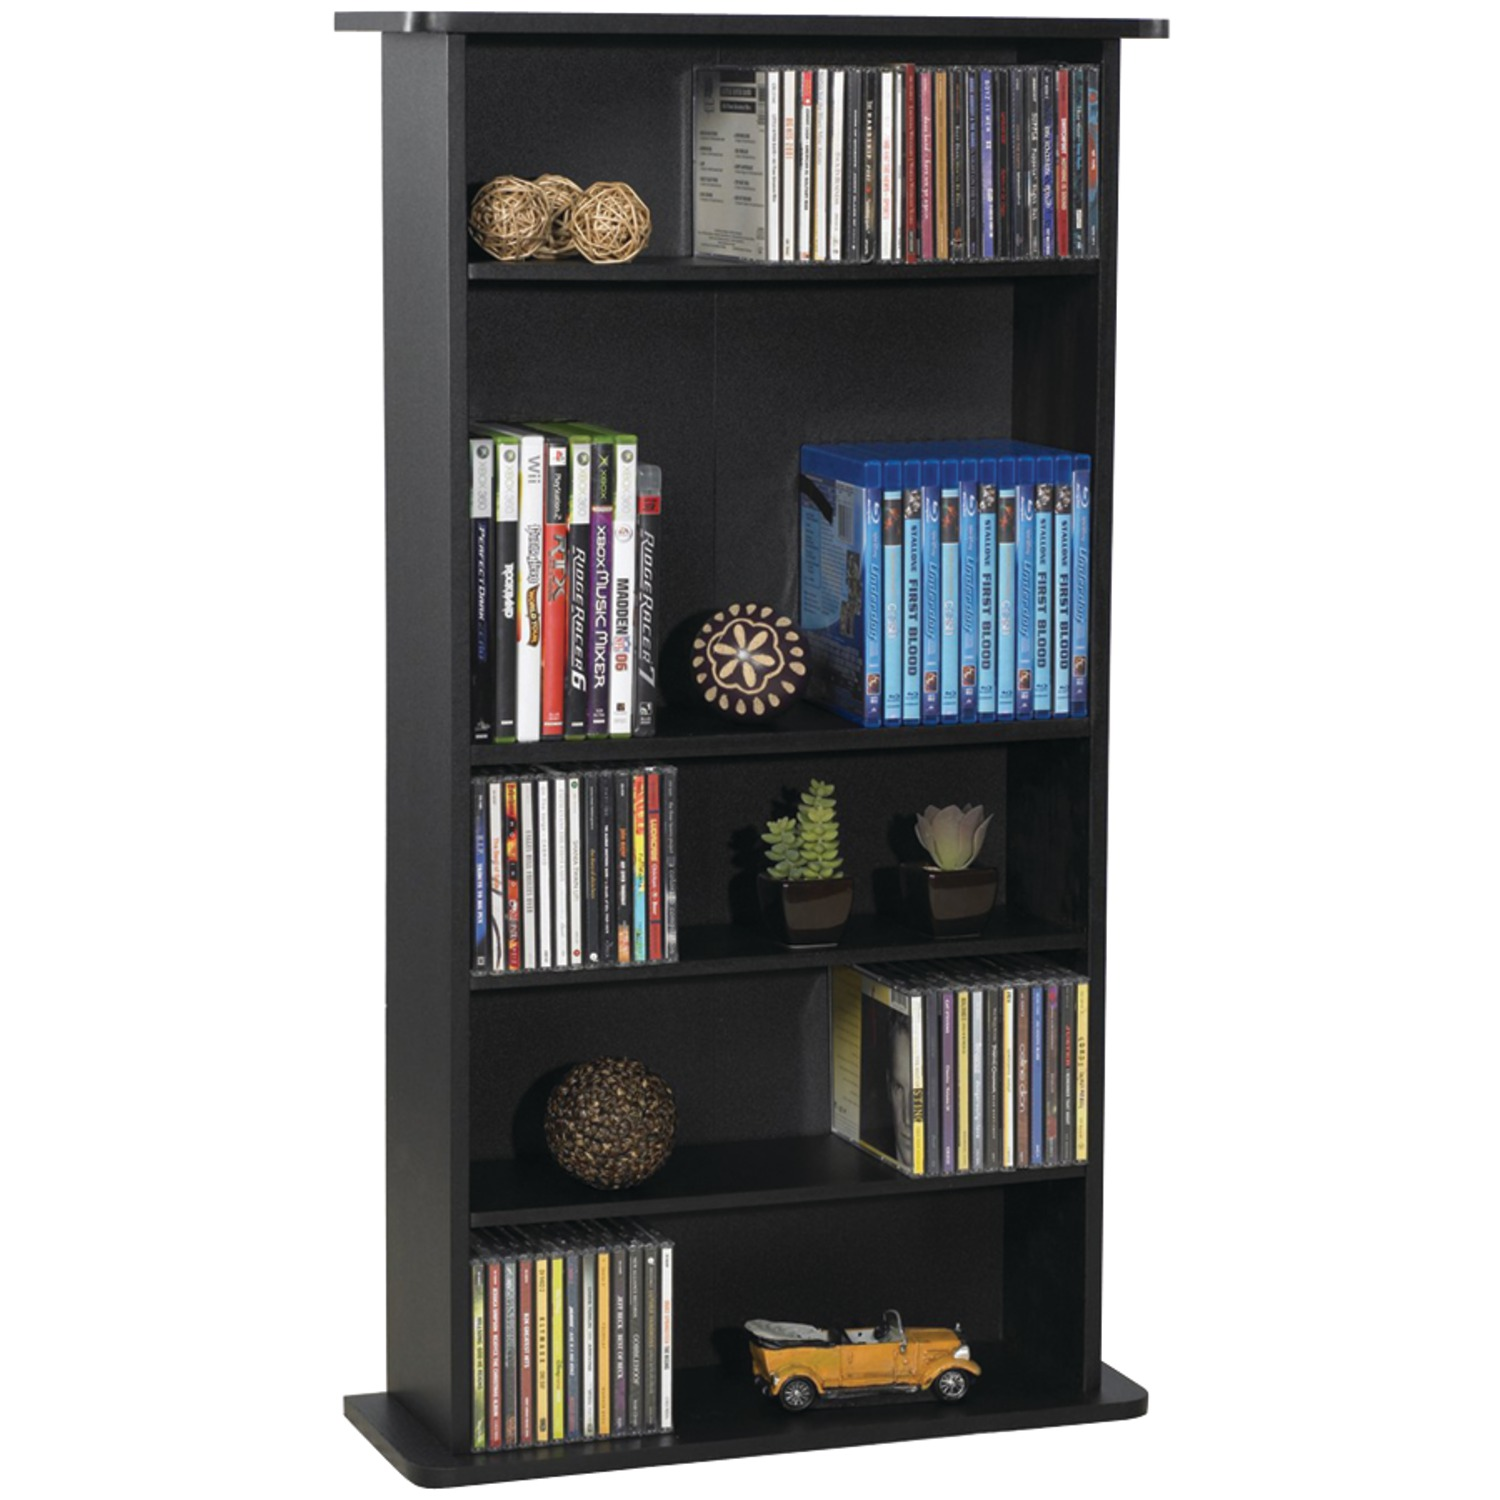 Atlantic Drawbridge CD & DVD Media Cabinet- Shelf by Atlantic